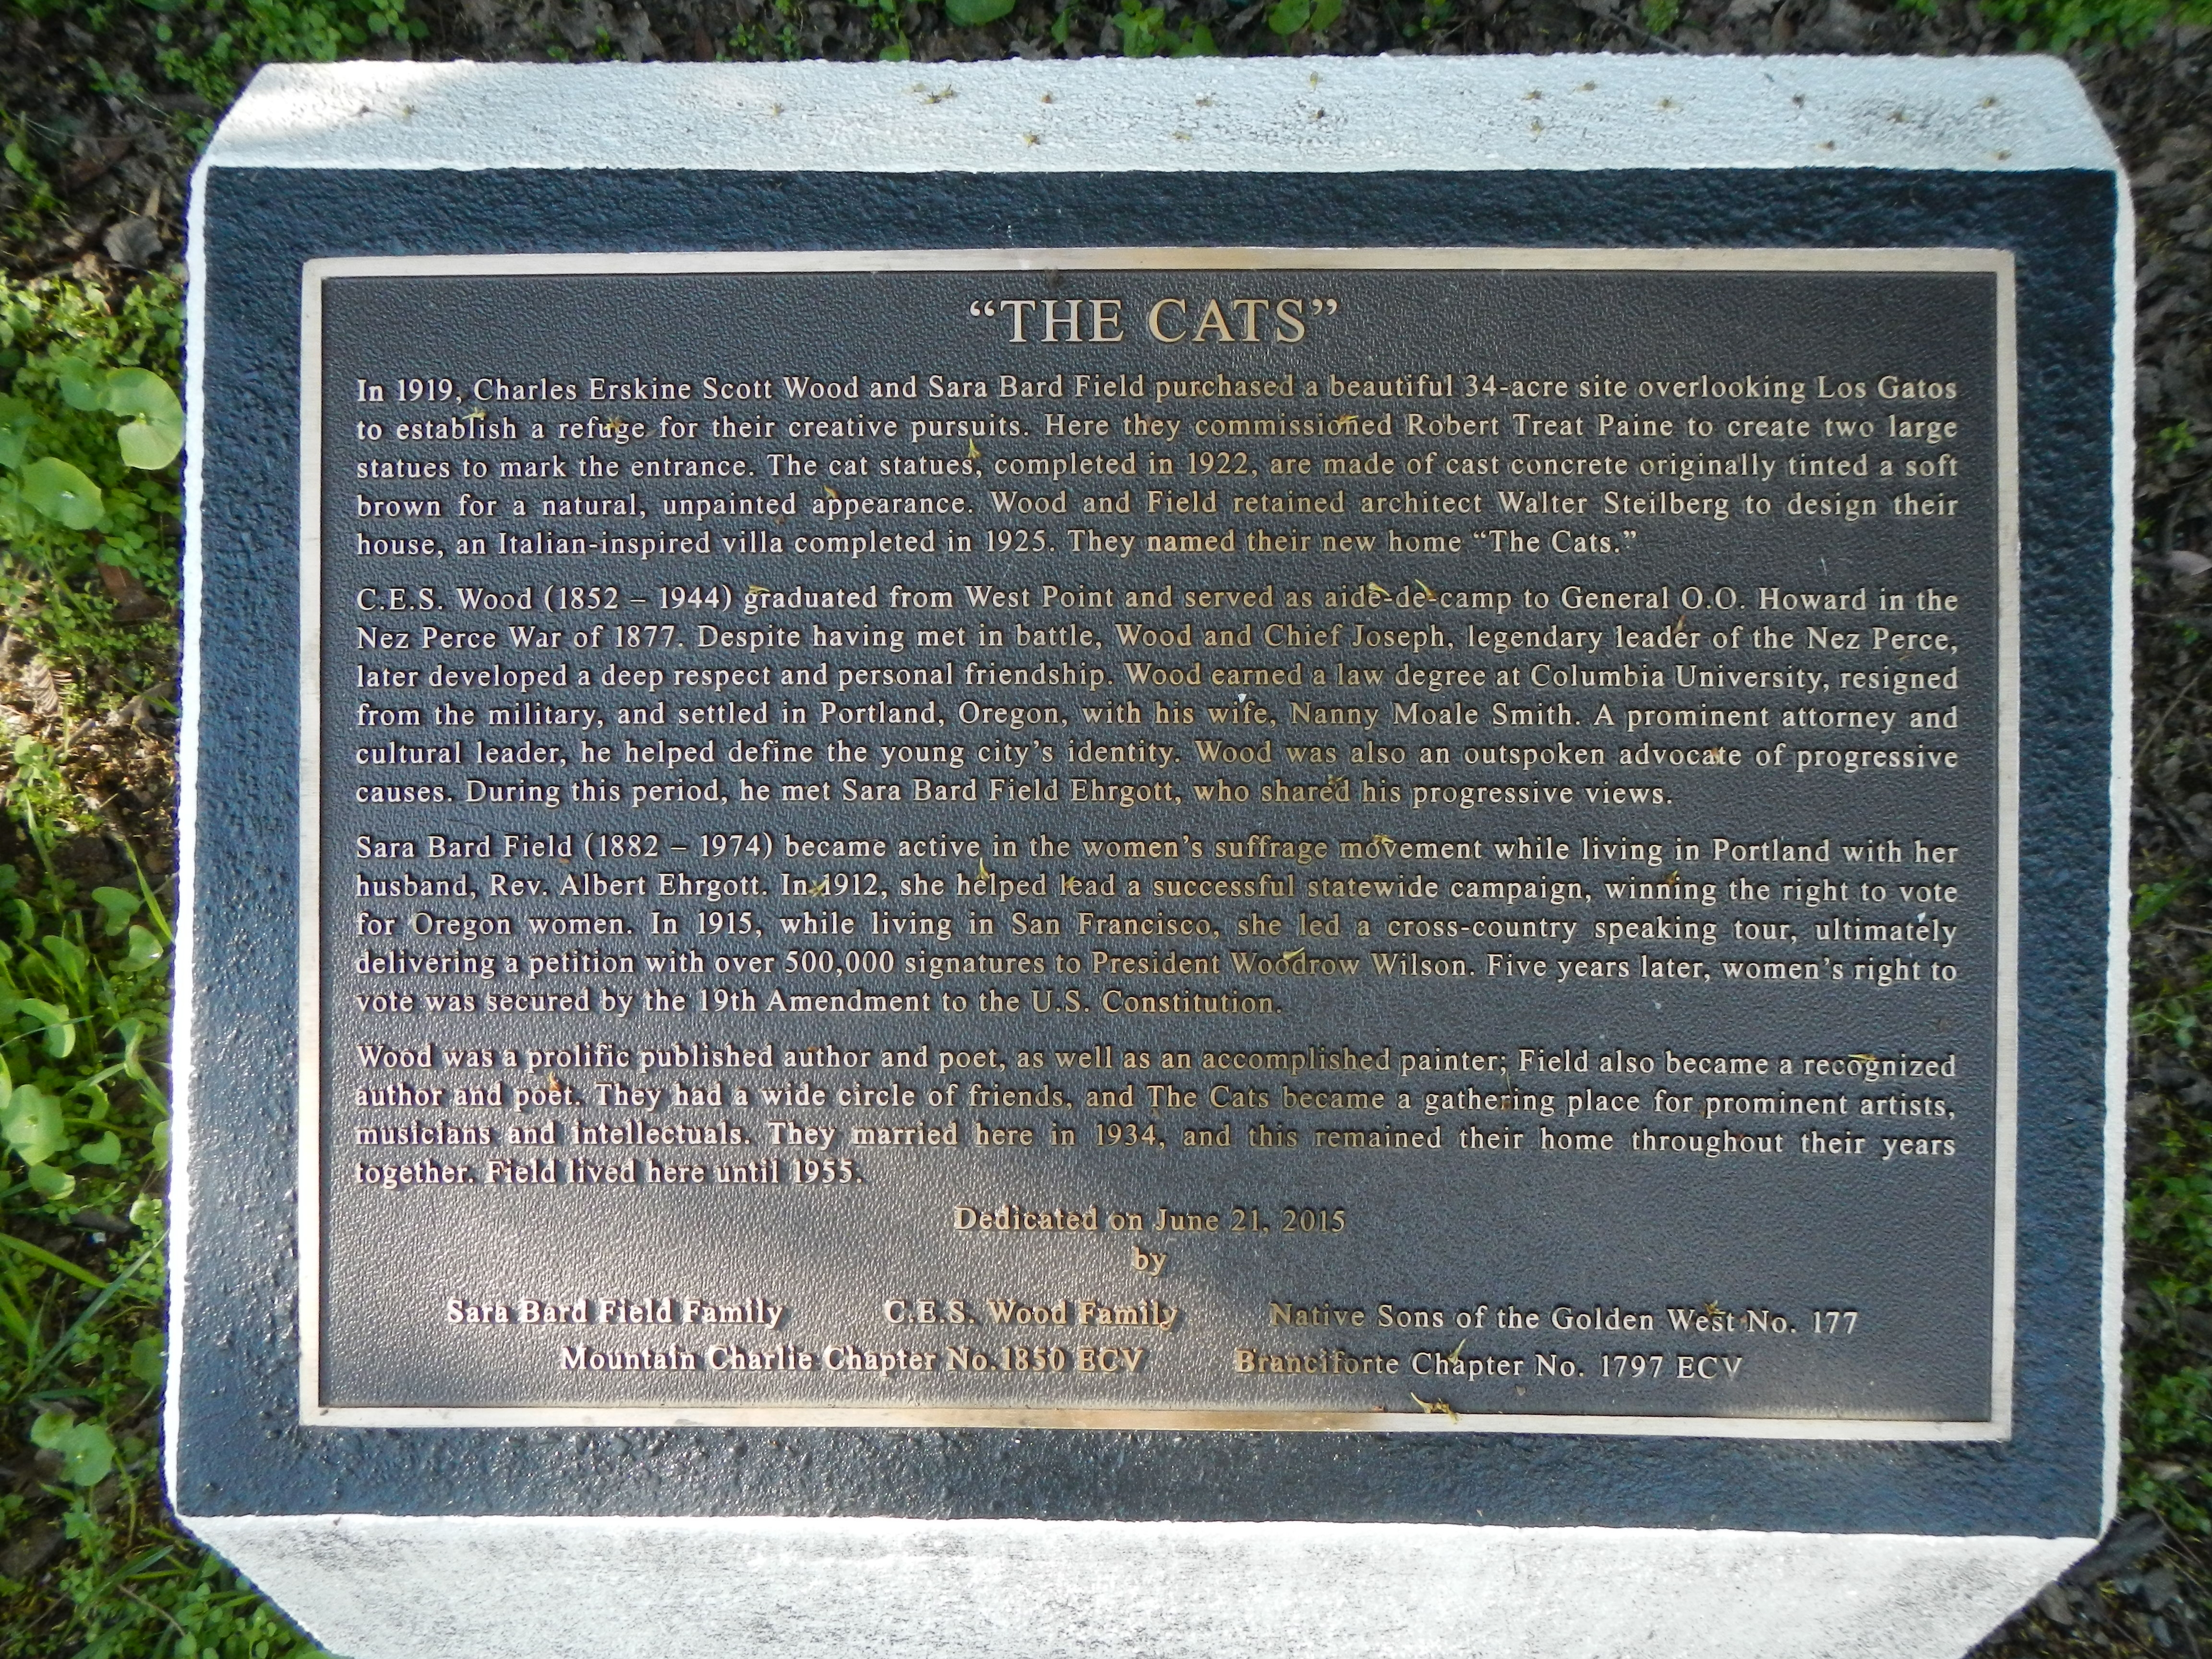 """The Cats"" Marker"